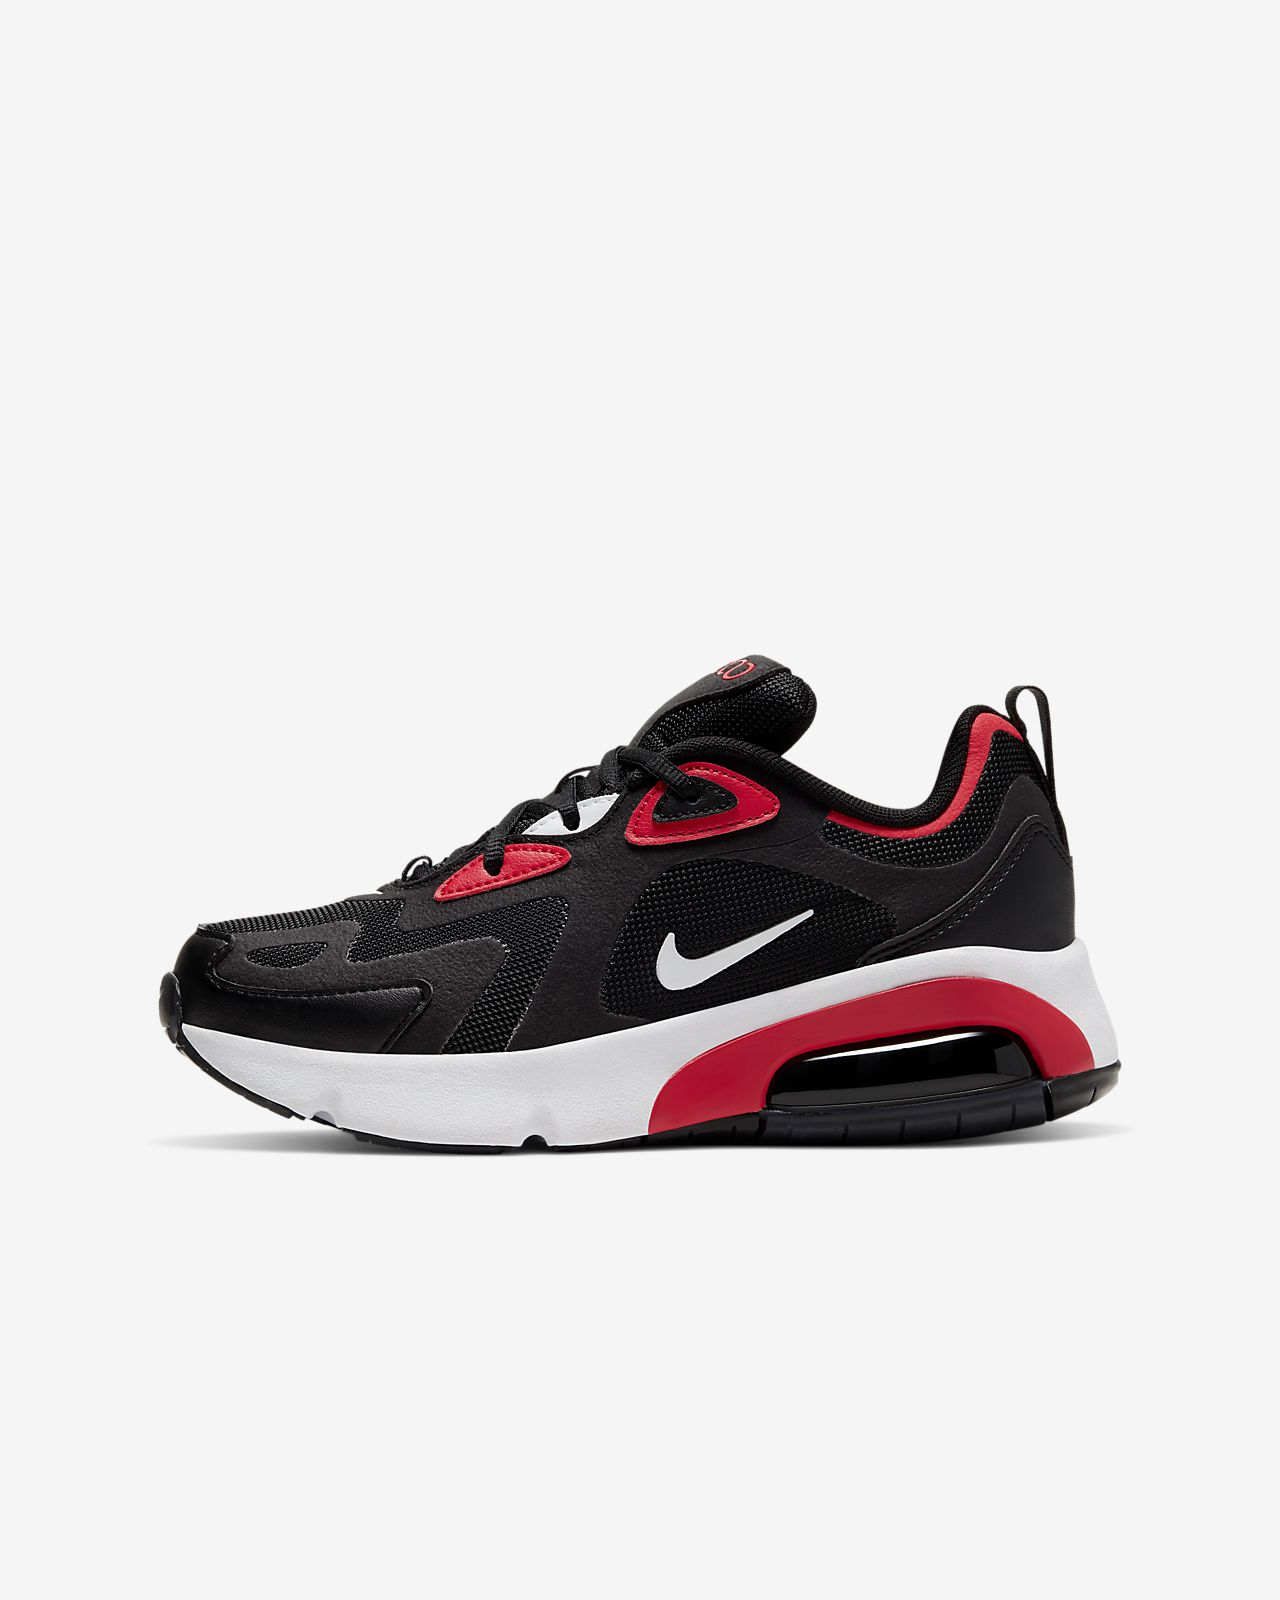 Kids Air Max Shoes. Nike LU